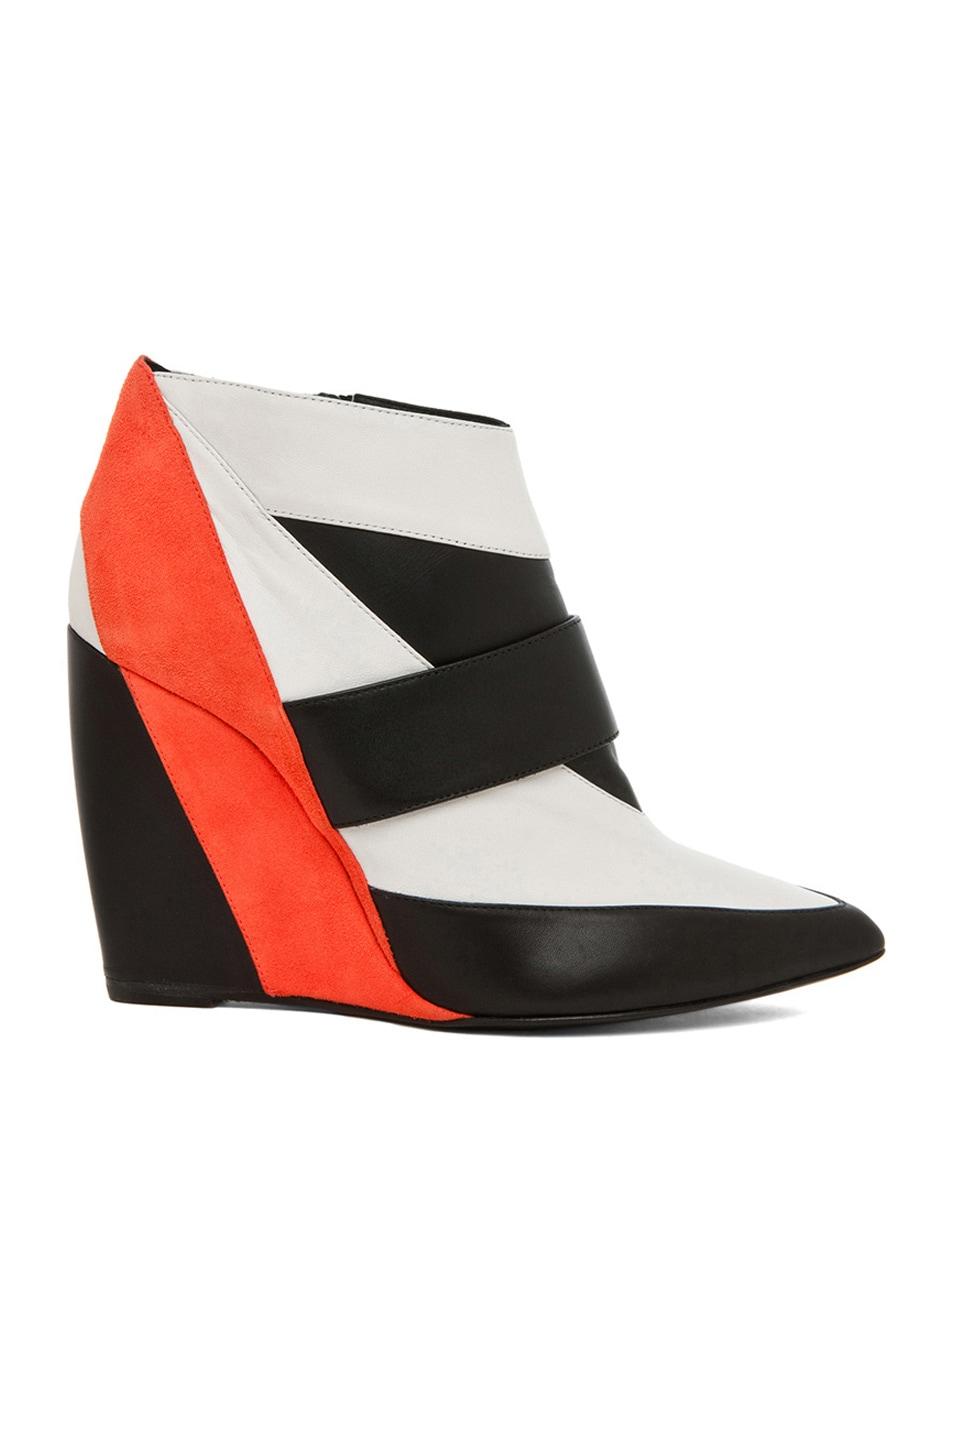 Image 1 of Pierre Hardy Calfskin & Nappa Leather Colorblock Wedges in Trico